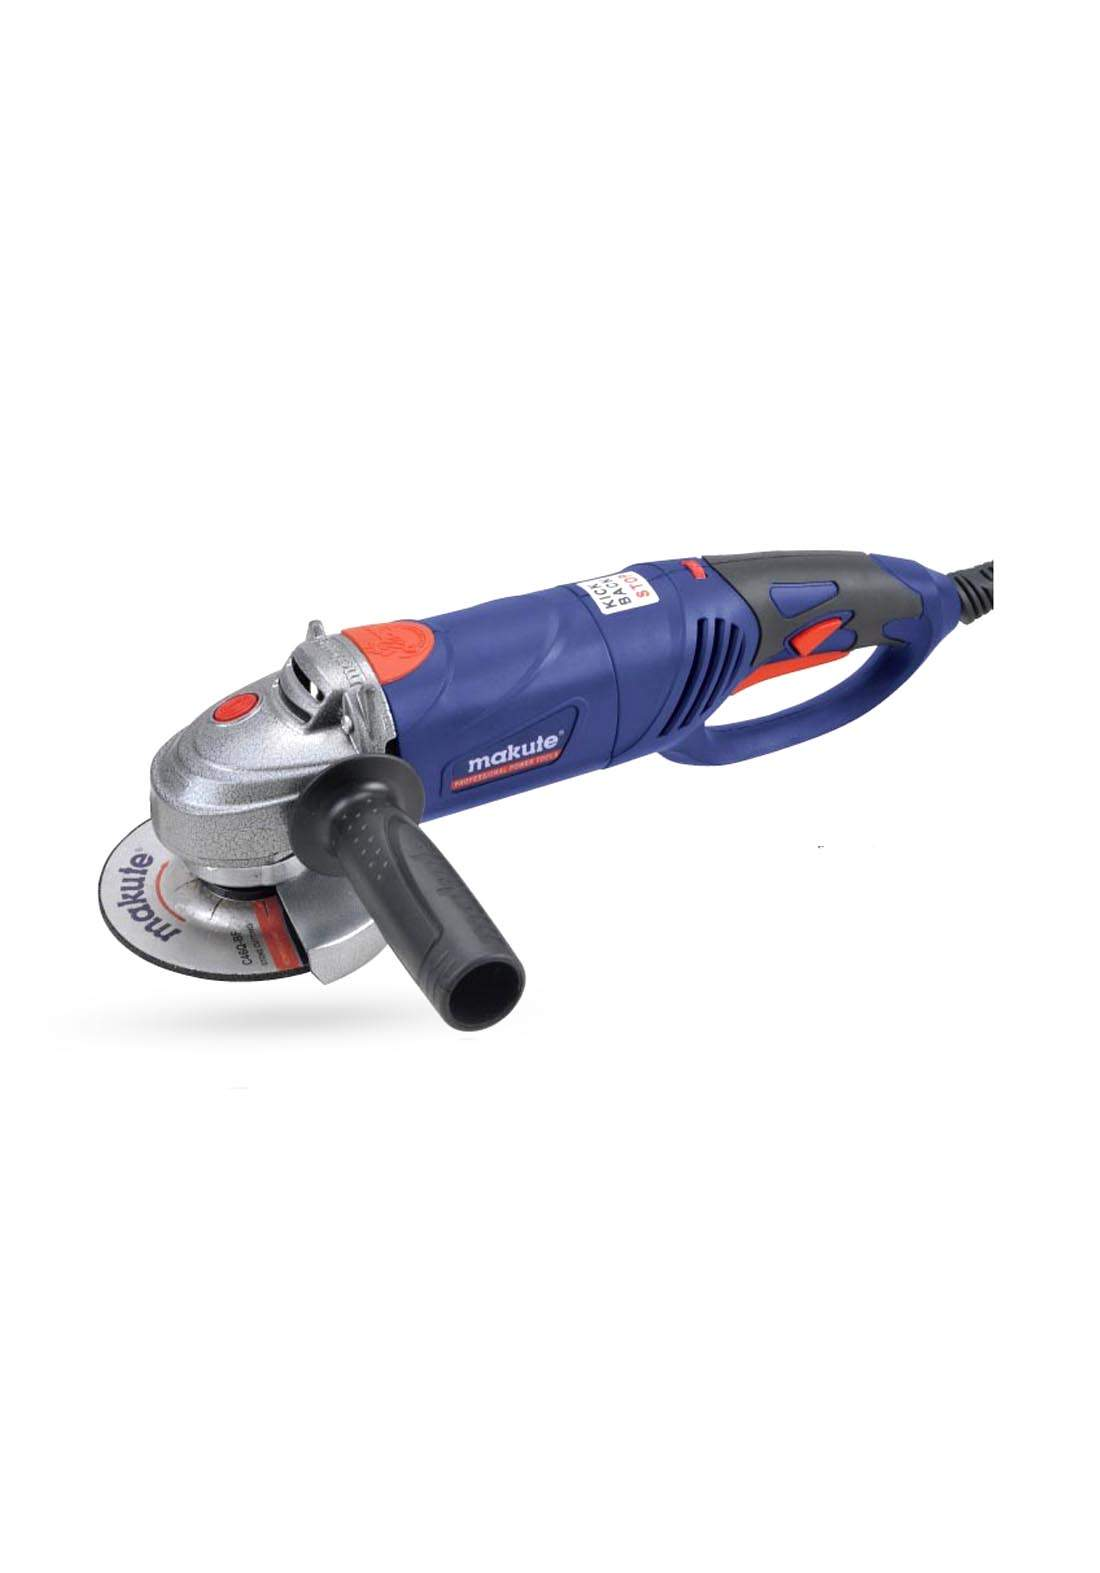 Makute  AG008-B   Electric Mini Power Tool Angle Grinder 850 W 115 mm كوسرة